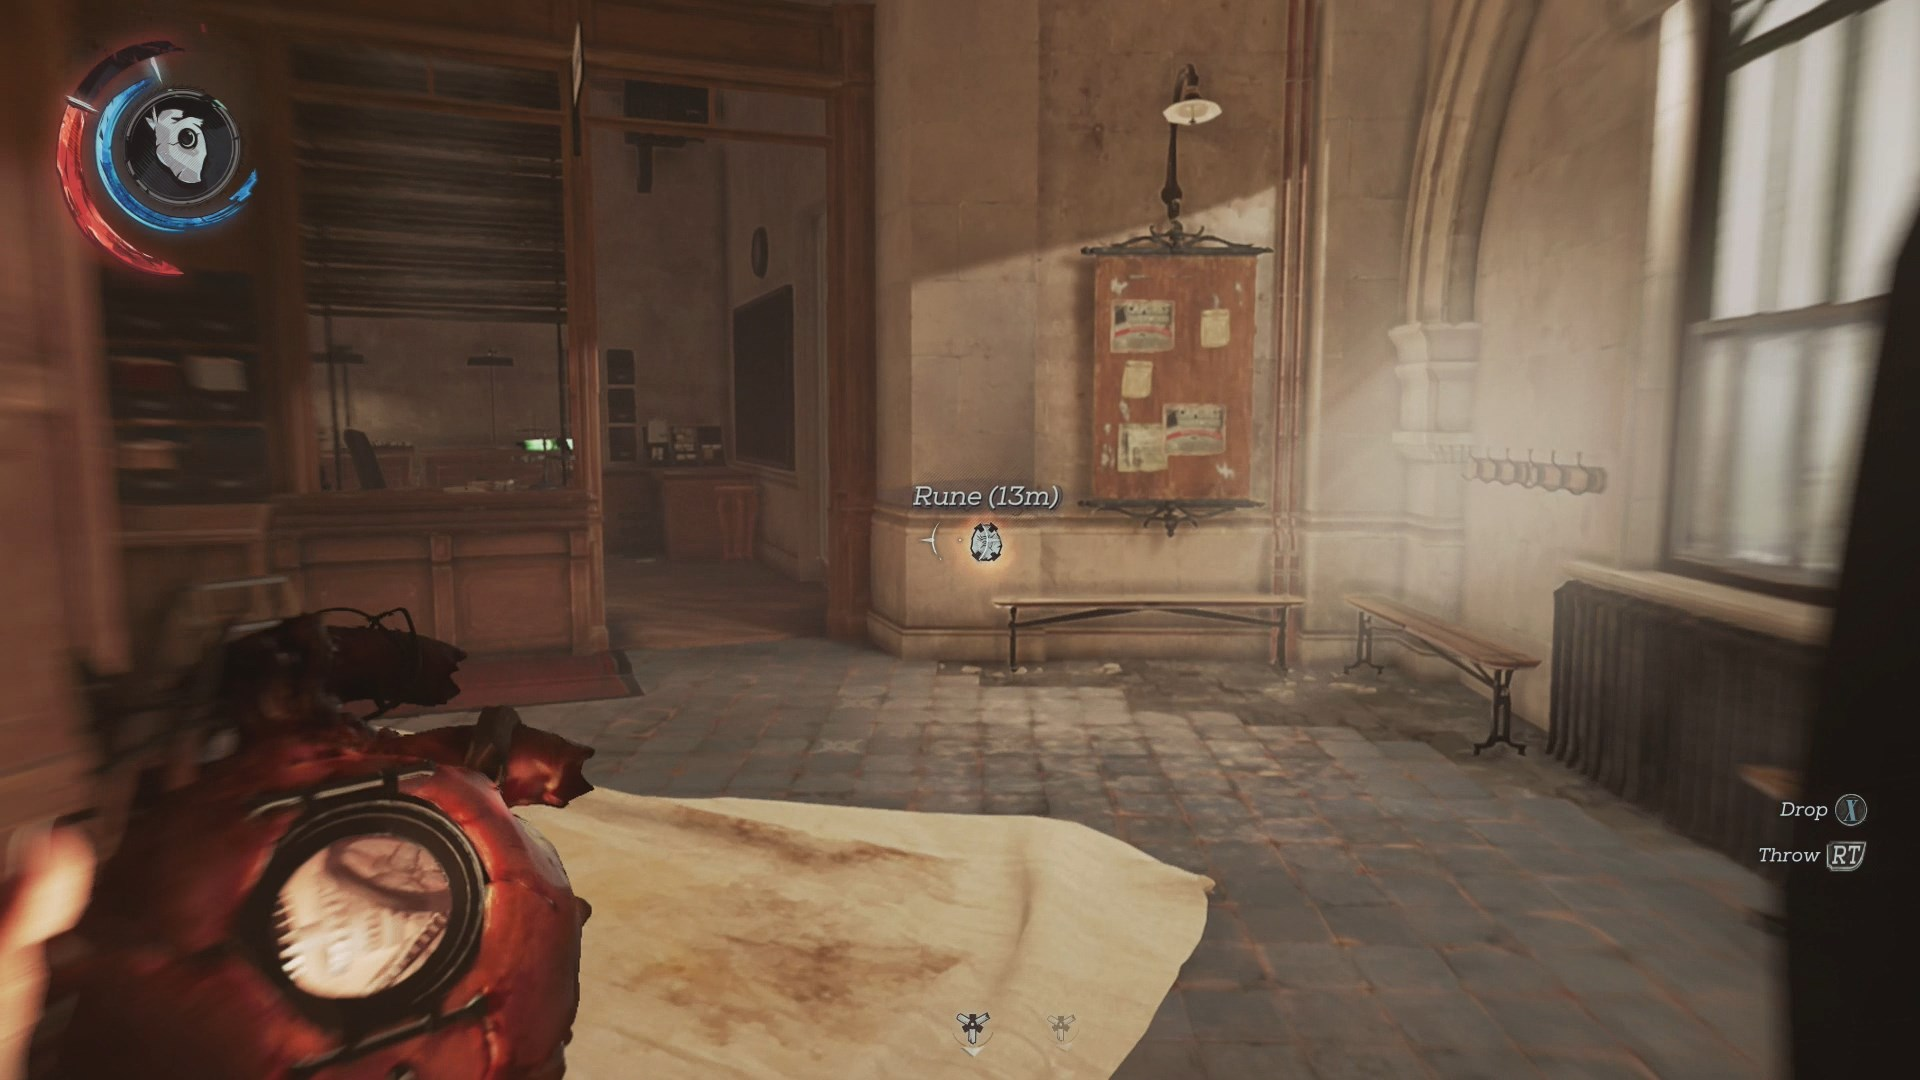 Dishonored 2 Mission 6 Rune #5